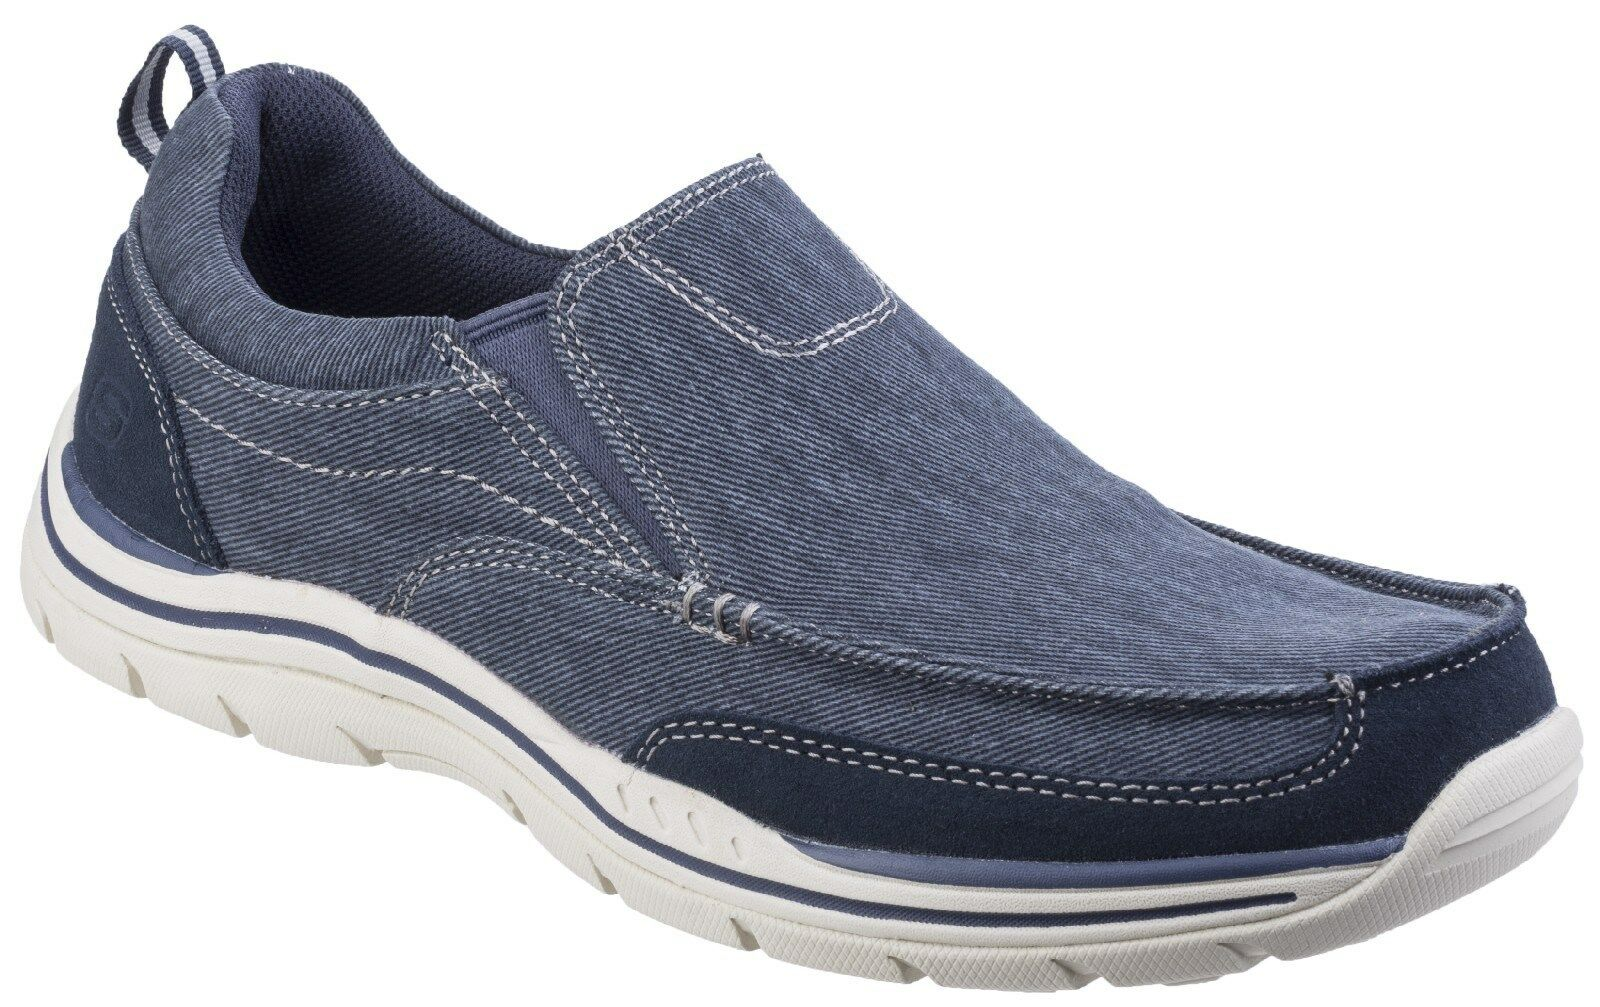 Skechers rendono Mocassini Expected Scarpe Casual memoria Foam tessile Mocassini da uomo